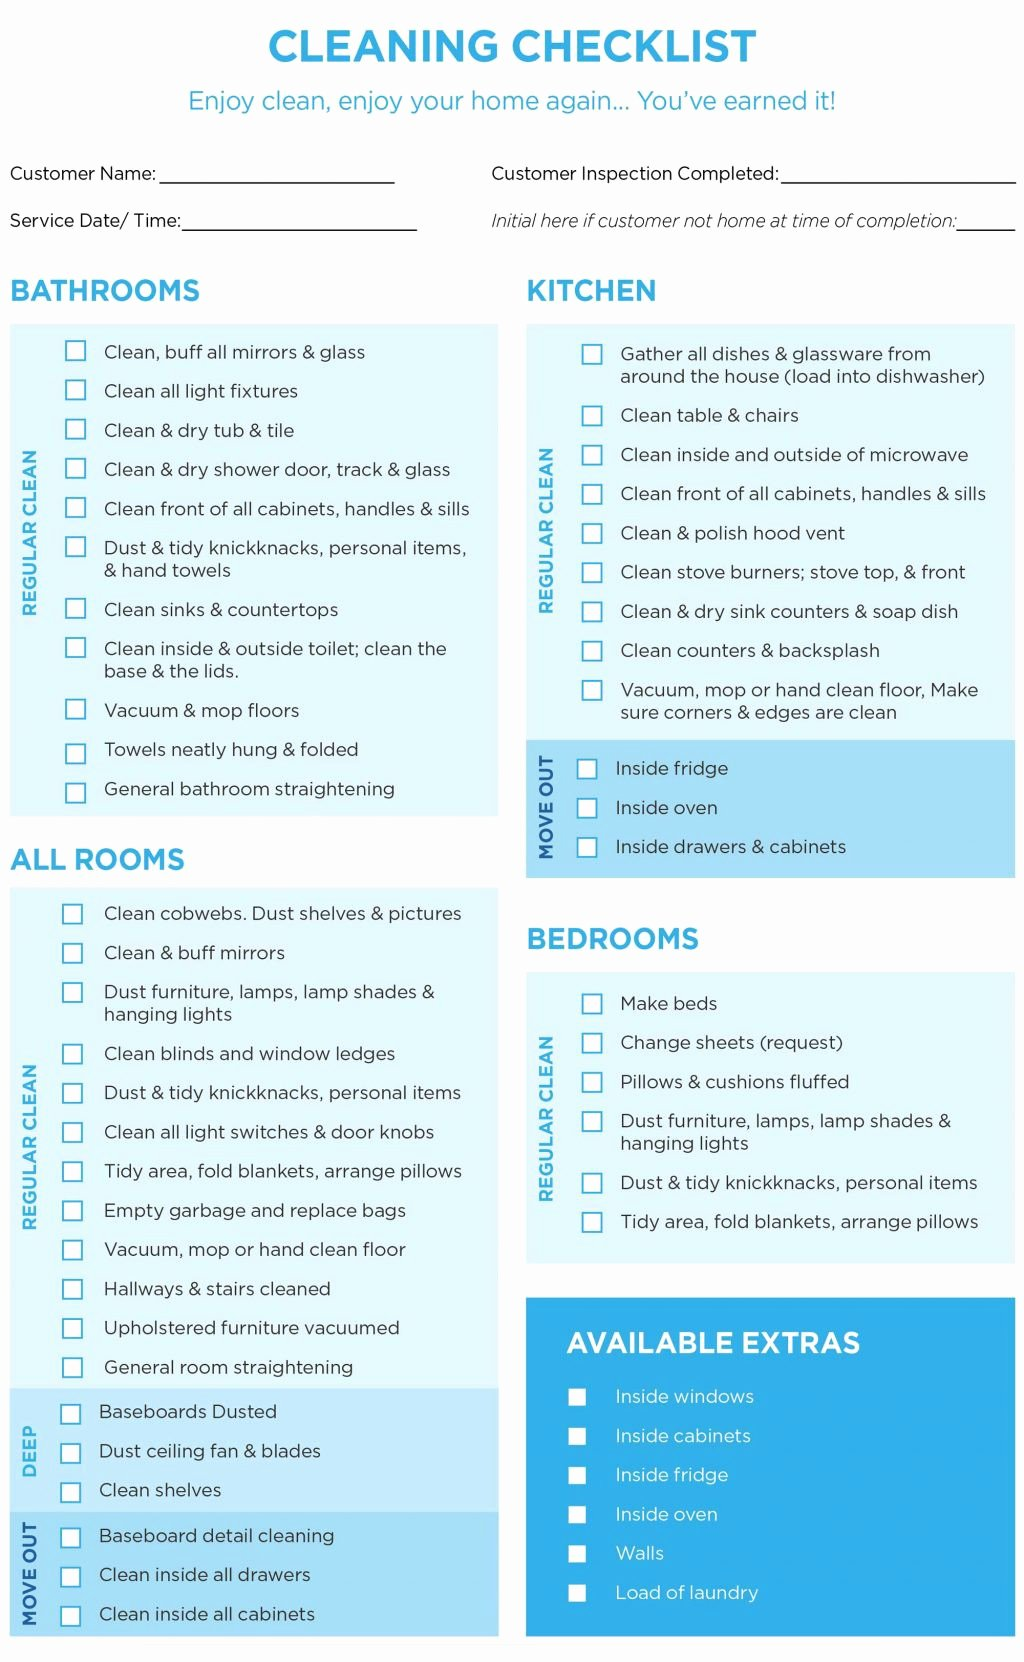 Cleaning Business Checklist Template Elegant 40 Helpful House Cleaning Checklists for You